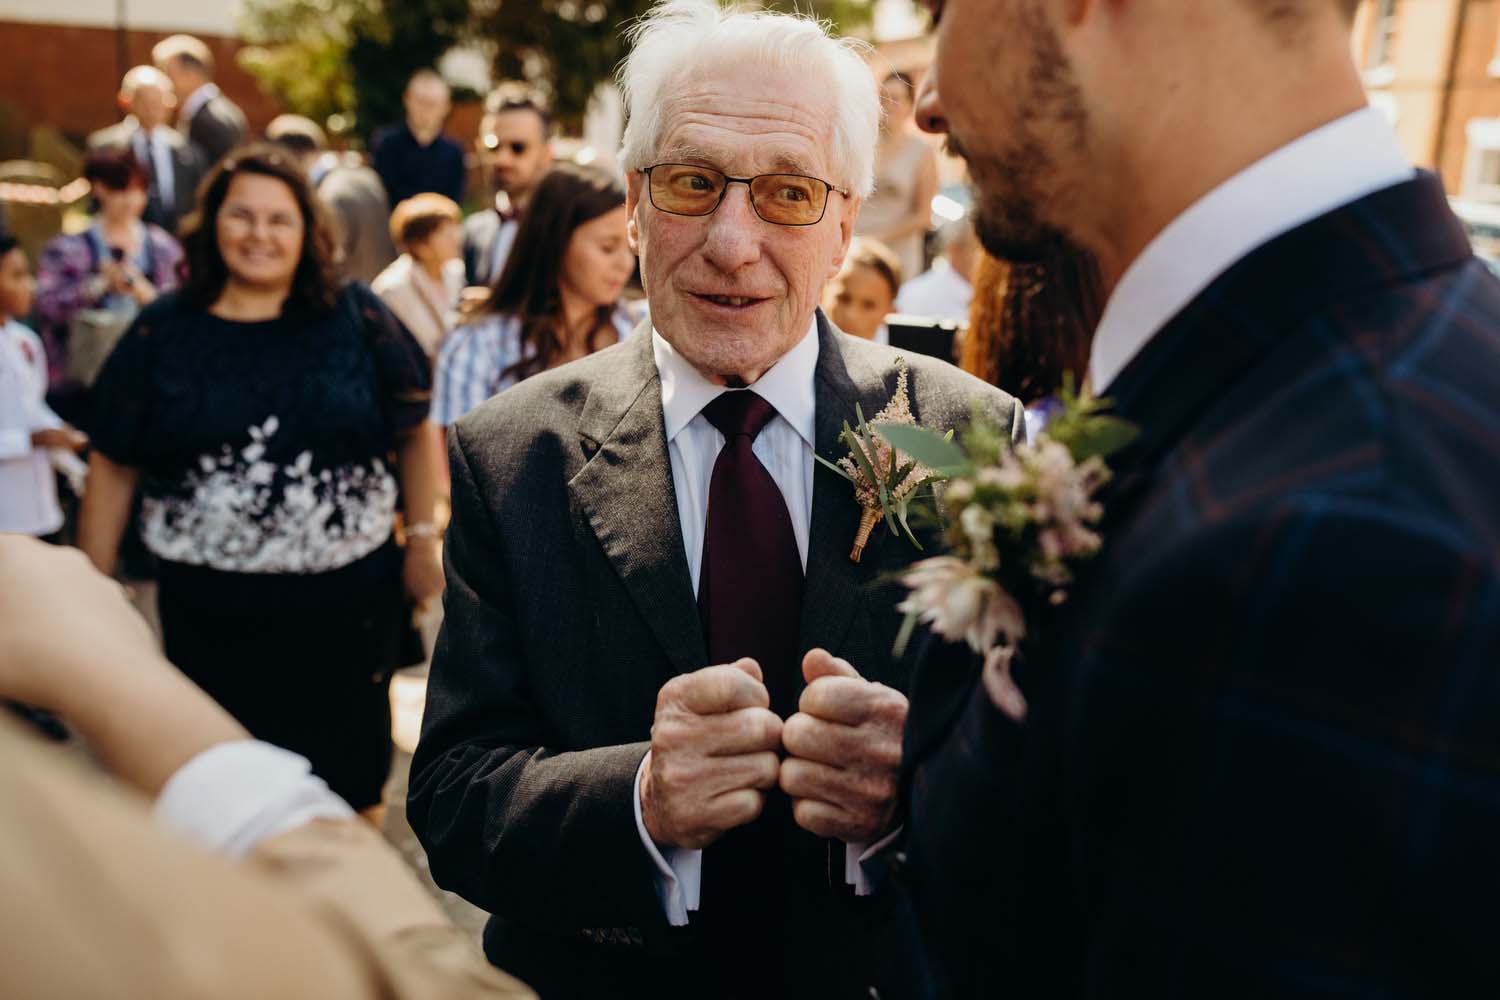 Grandfather of groom shares words of advice